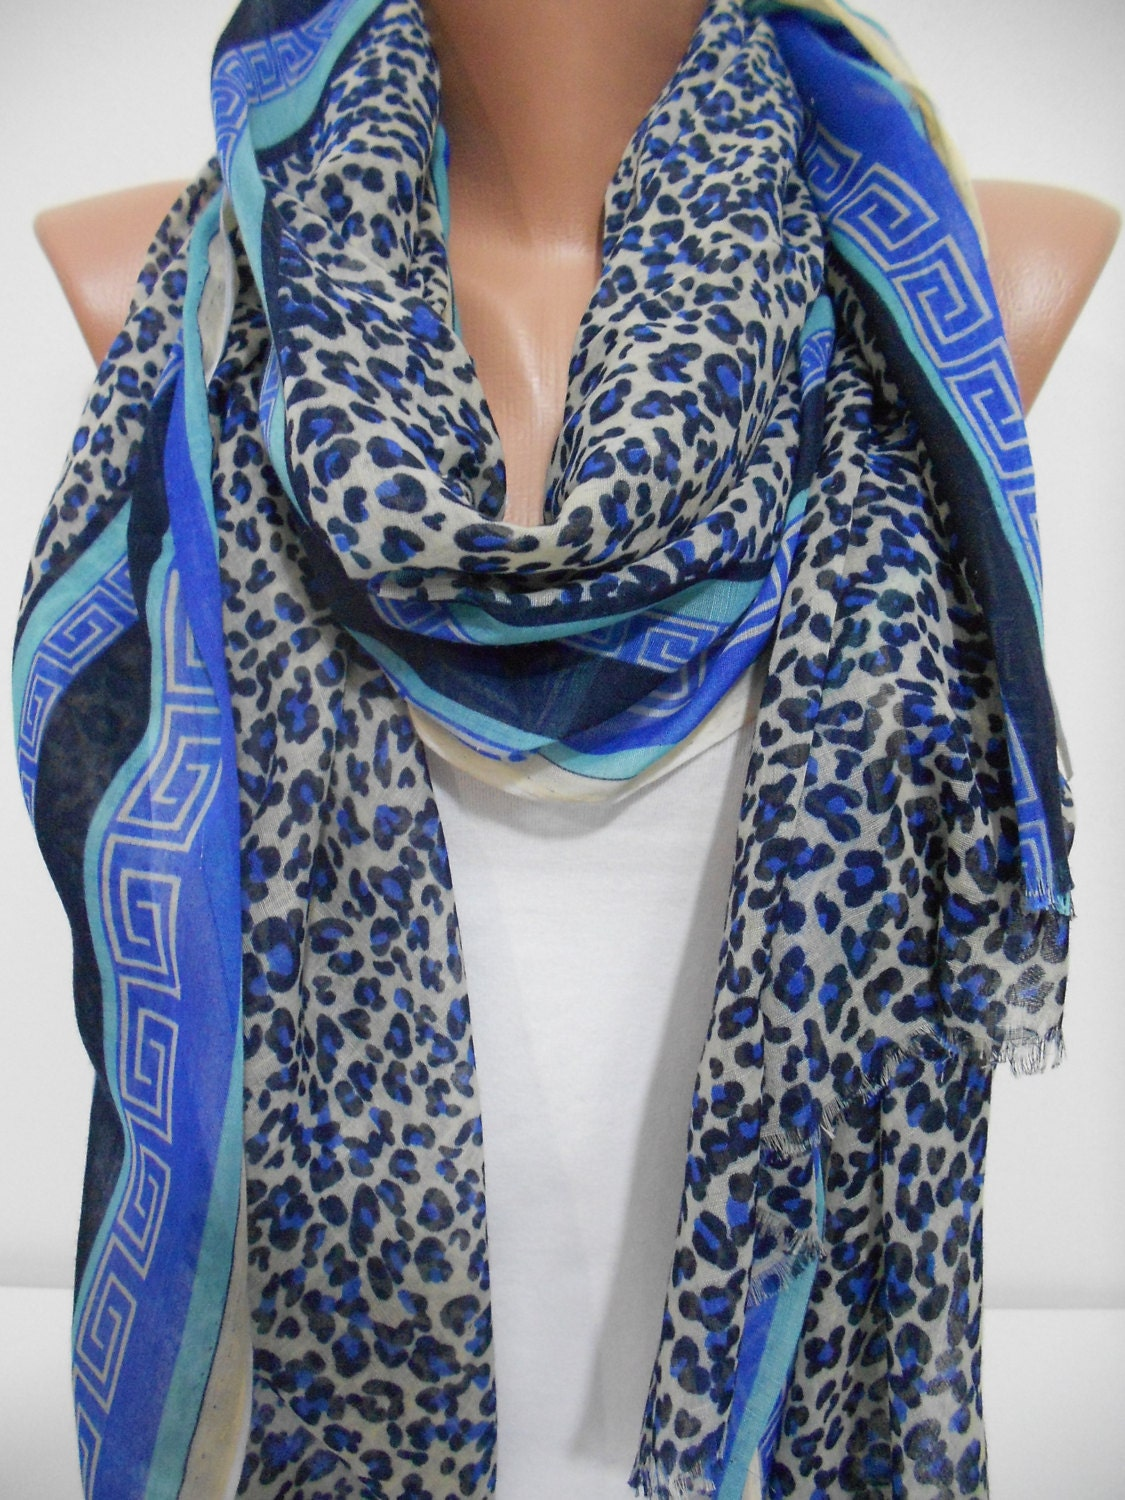 Shop for womens blue scarf online at Target. Free shipping on purchases over $35 and save 5% every day with your Target REDcard.